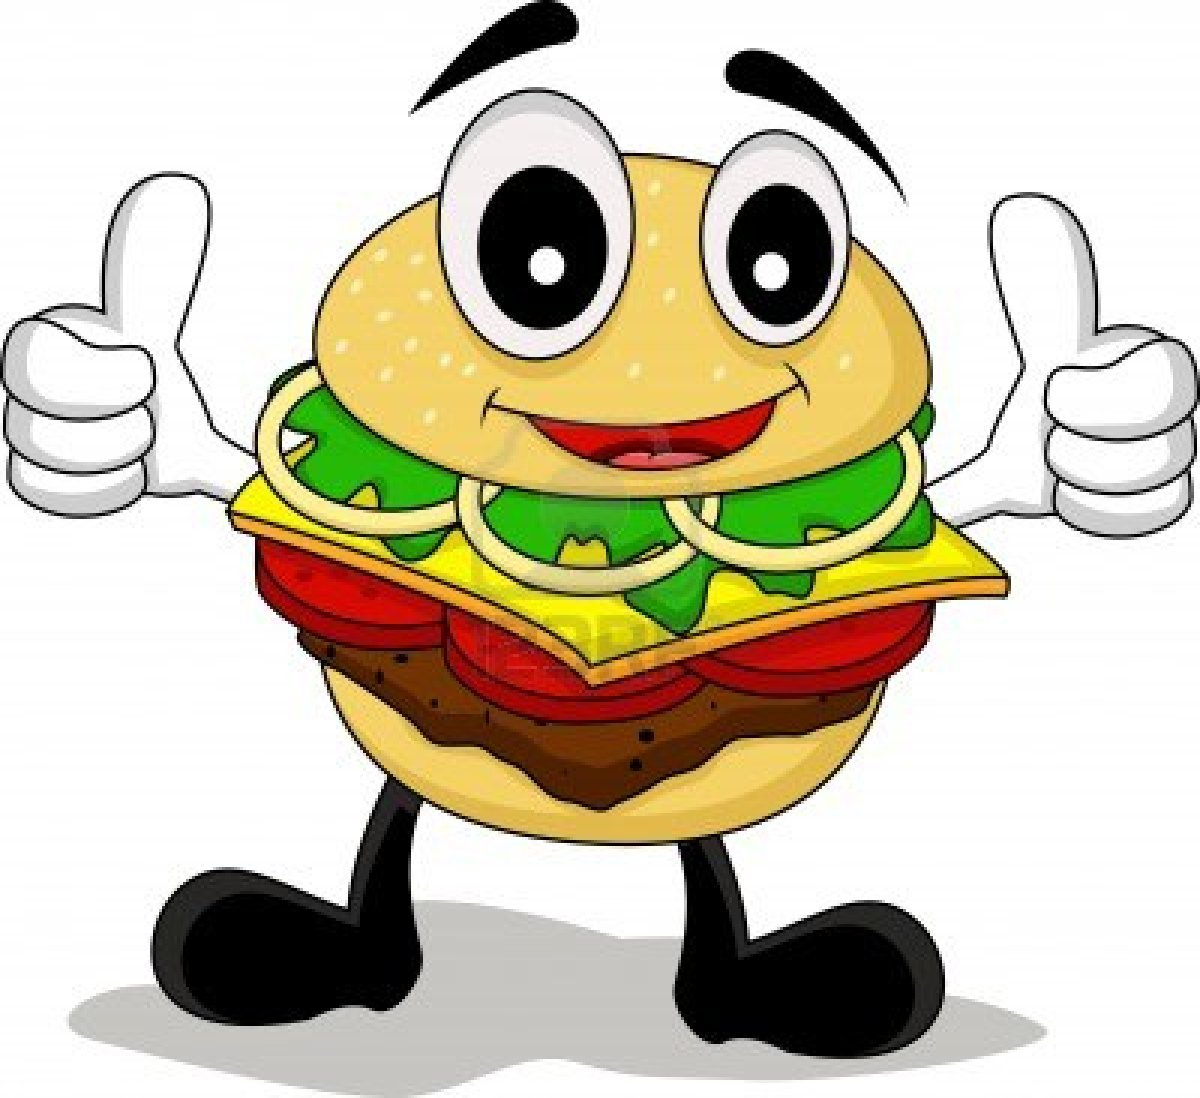 14508846-funny-cartoon-burger-character.jpeg